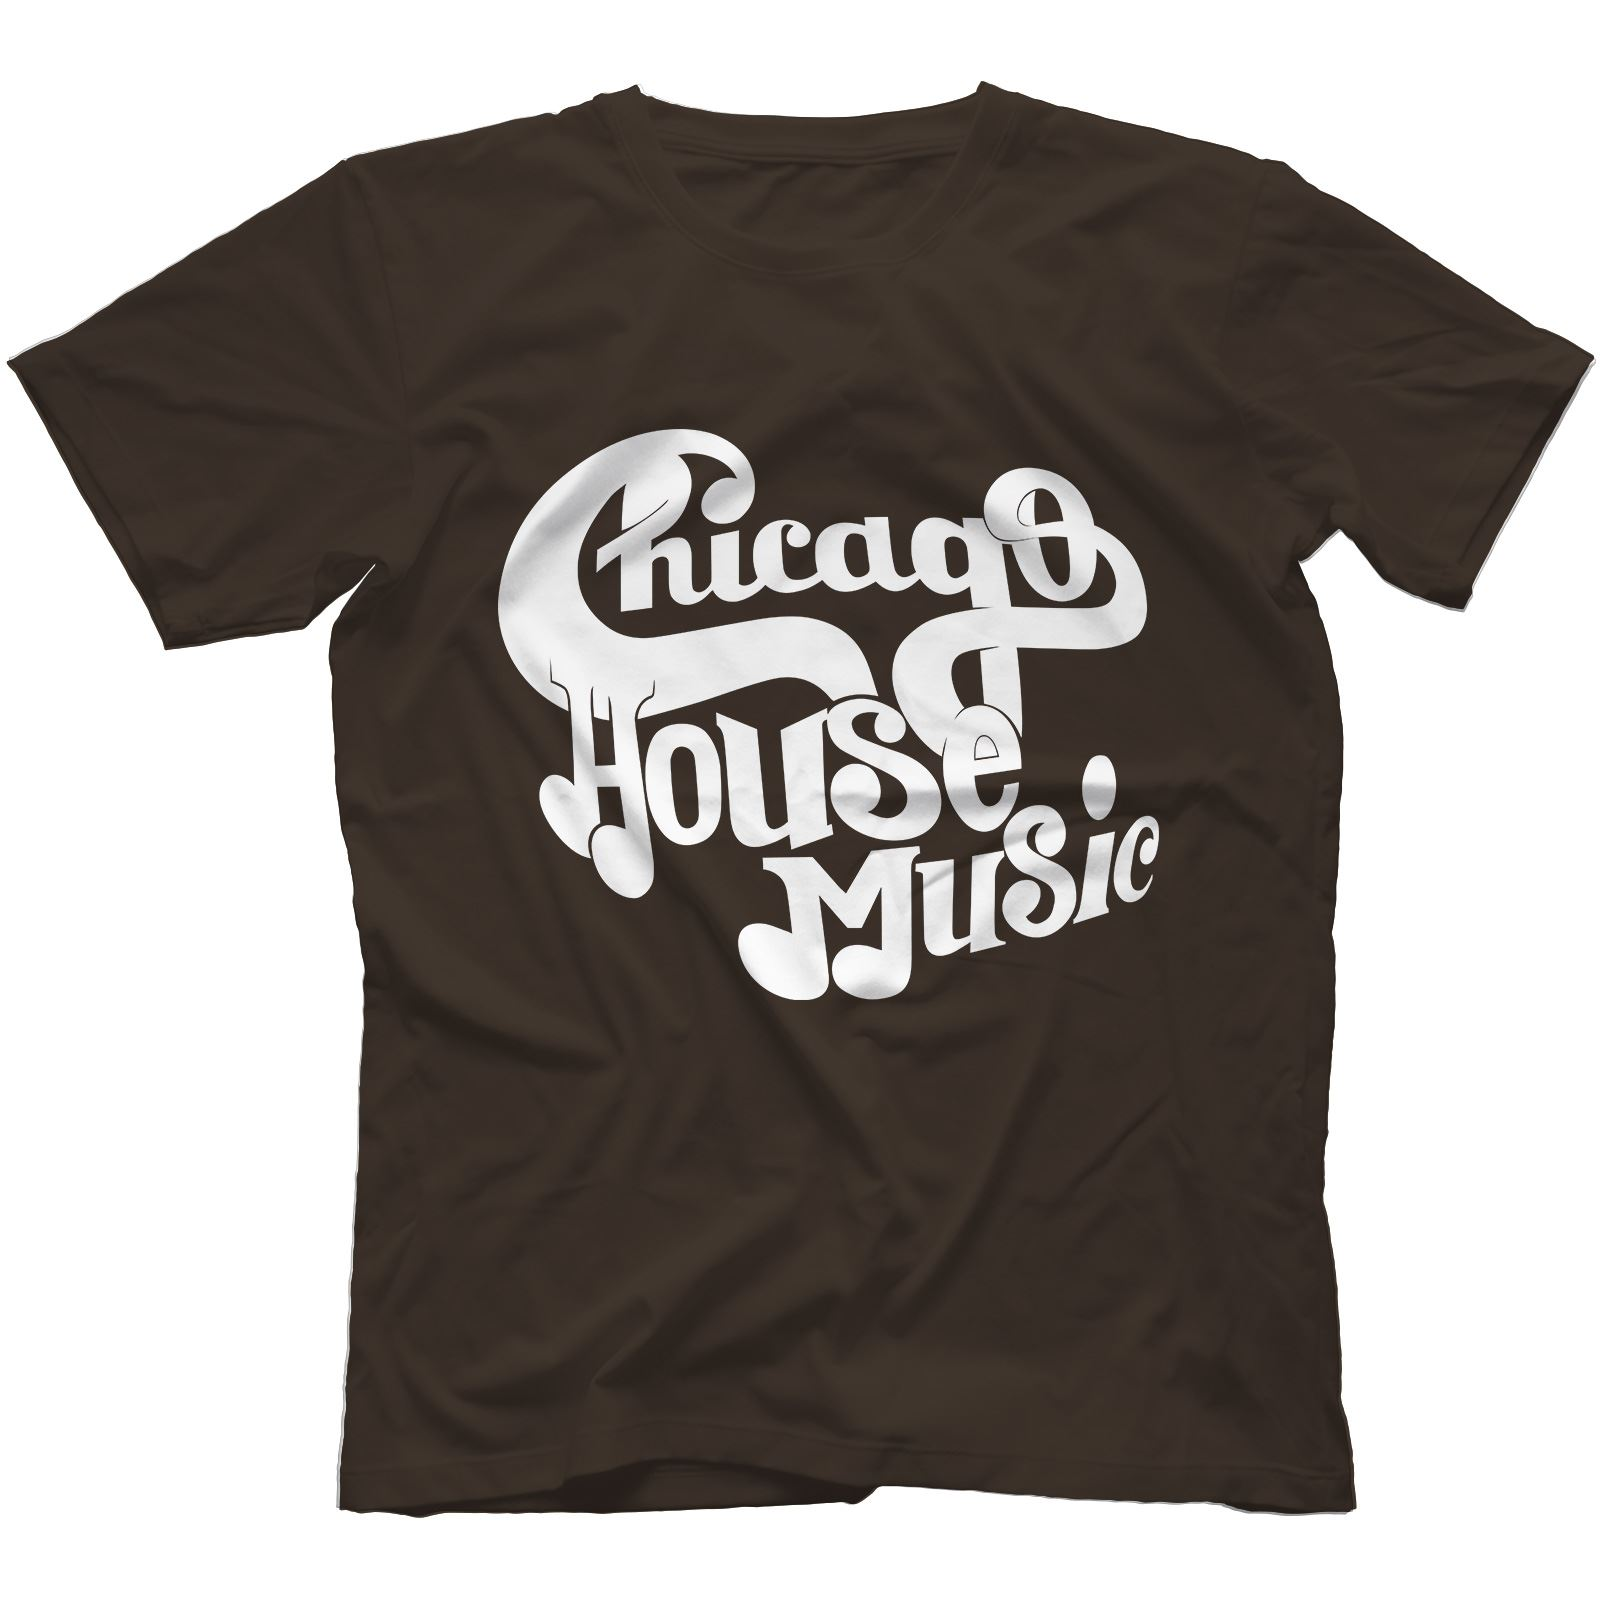 Chicago house music t shirt 100 cotton frankie knuckles for 90s chicago house music